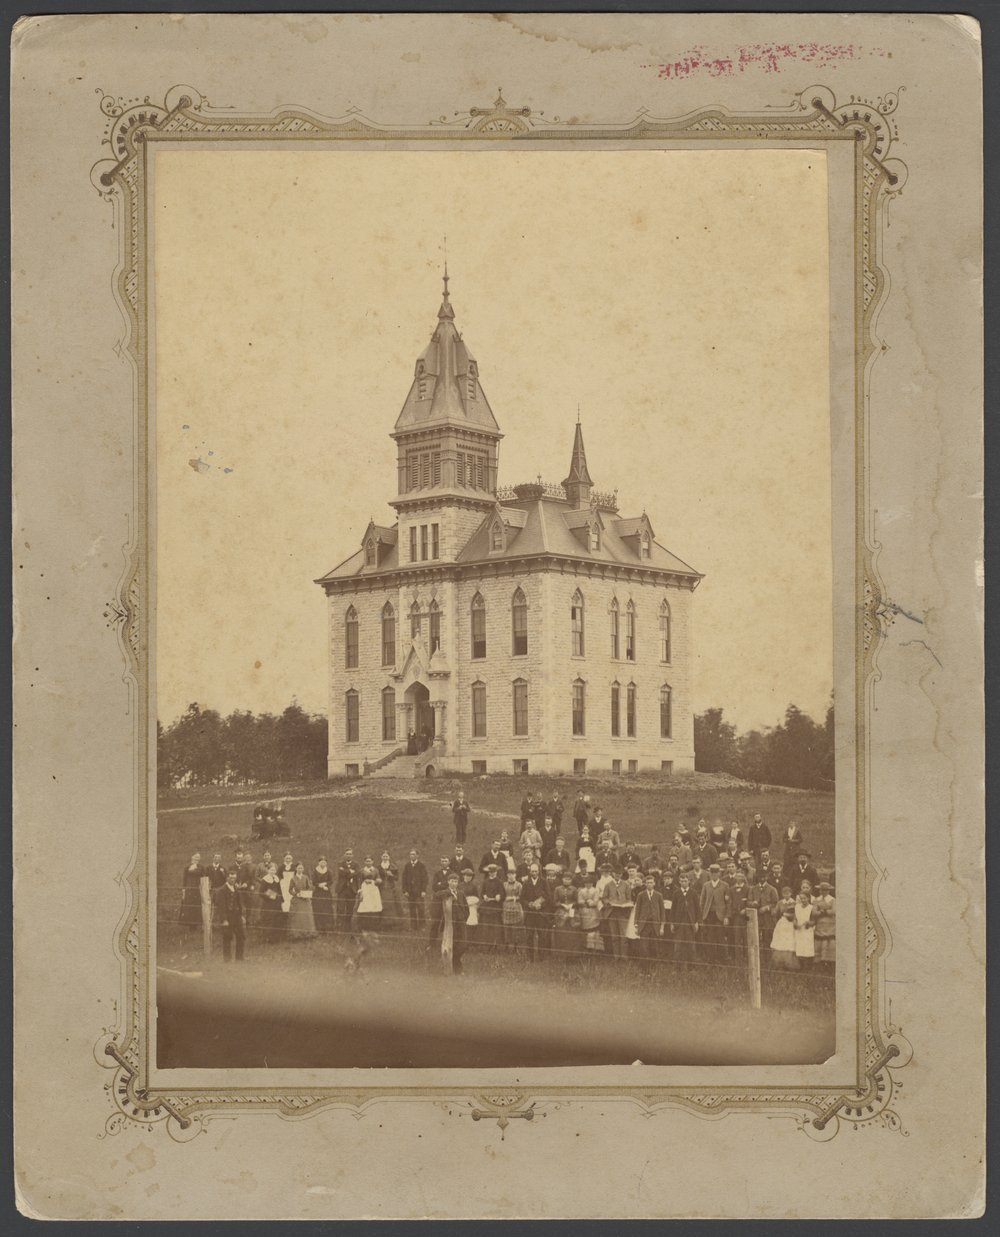 Campbell College, Holton, Kansas - A photograph of Campbell College (or Holton University) presented to Flo V. Knisely by Will M. Leonard, July 30, 1883